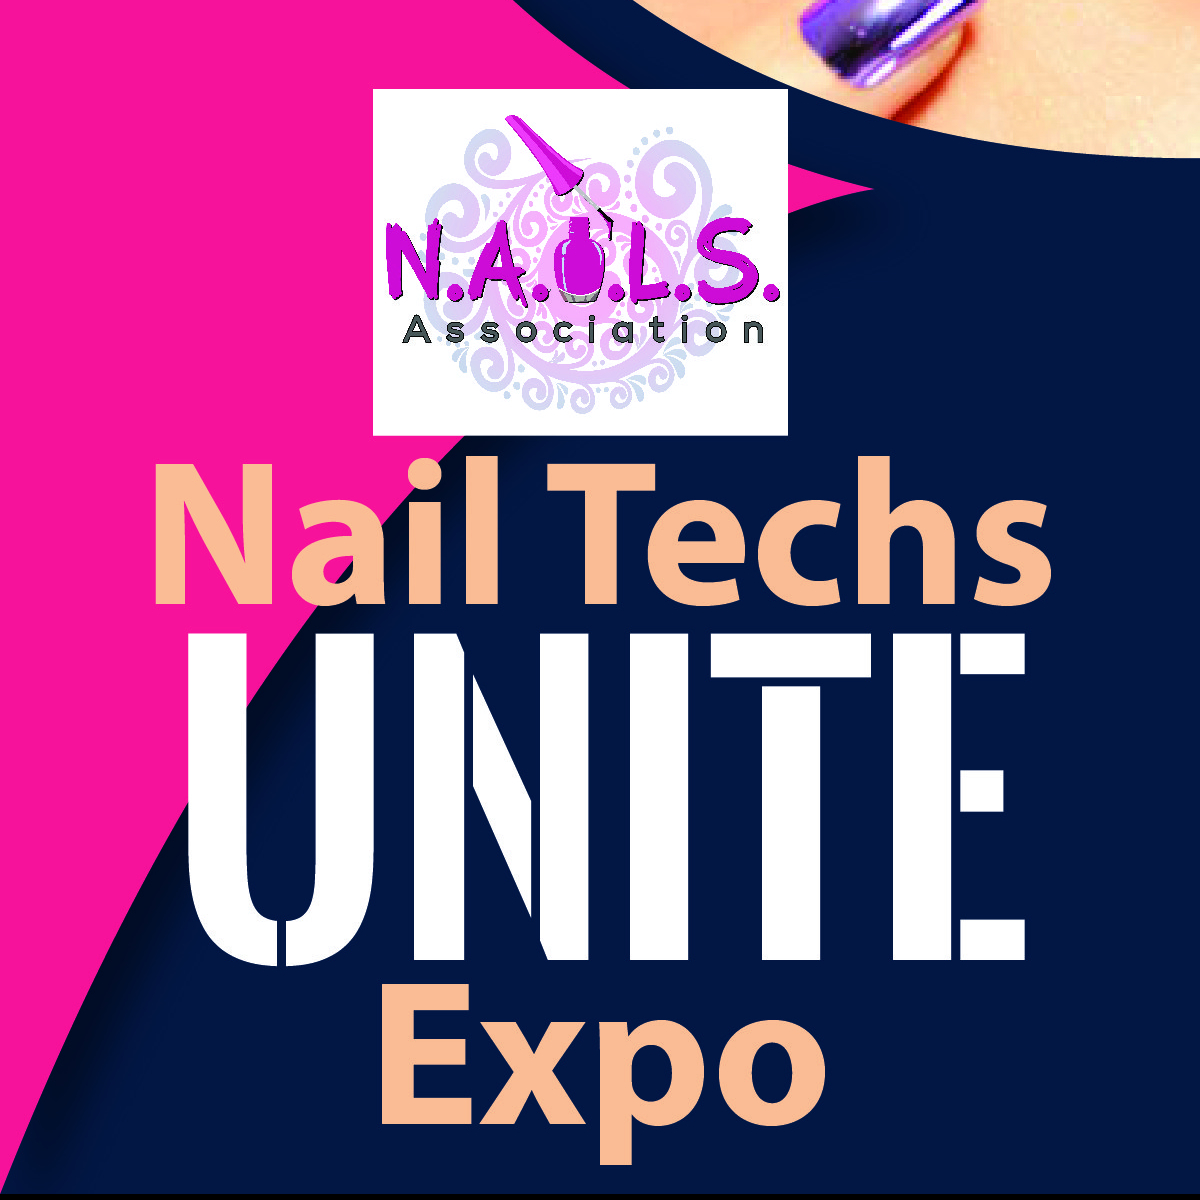 Nails w/ Art Competition – Nail Techs UNITE Expo